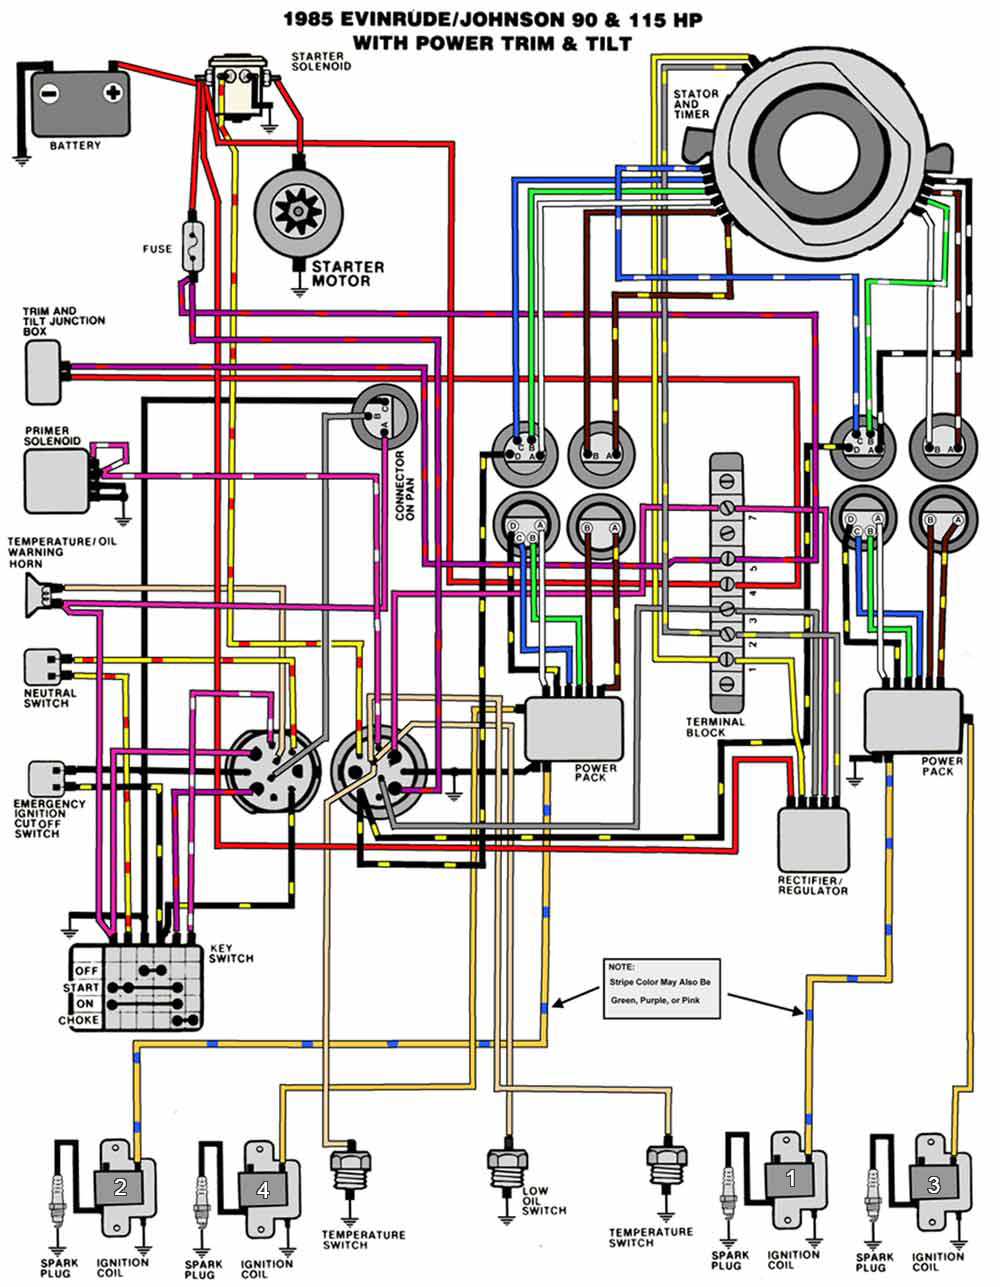 Omc Key Switch Wiring Diagram from maxrules.com